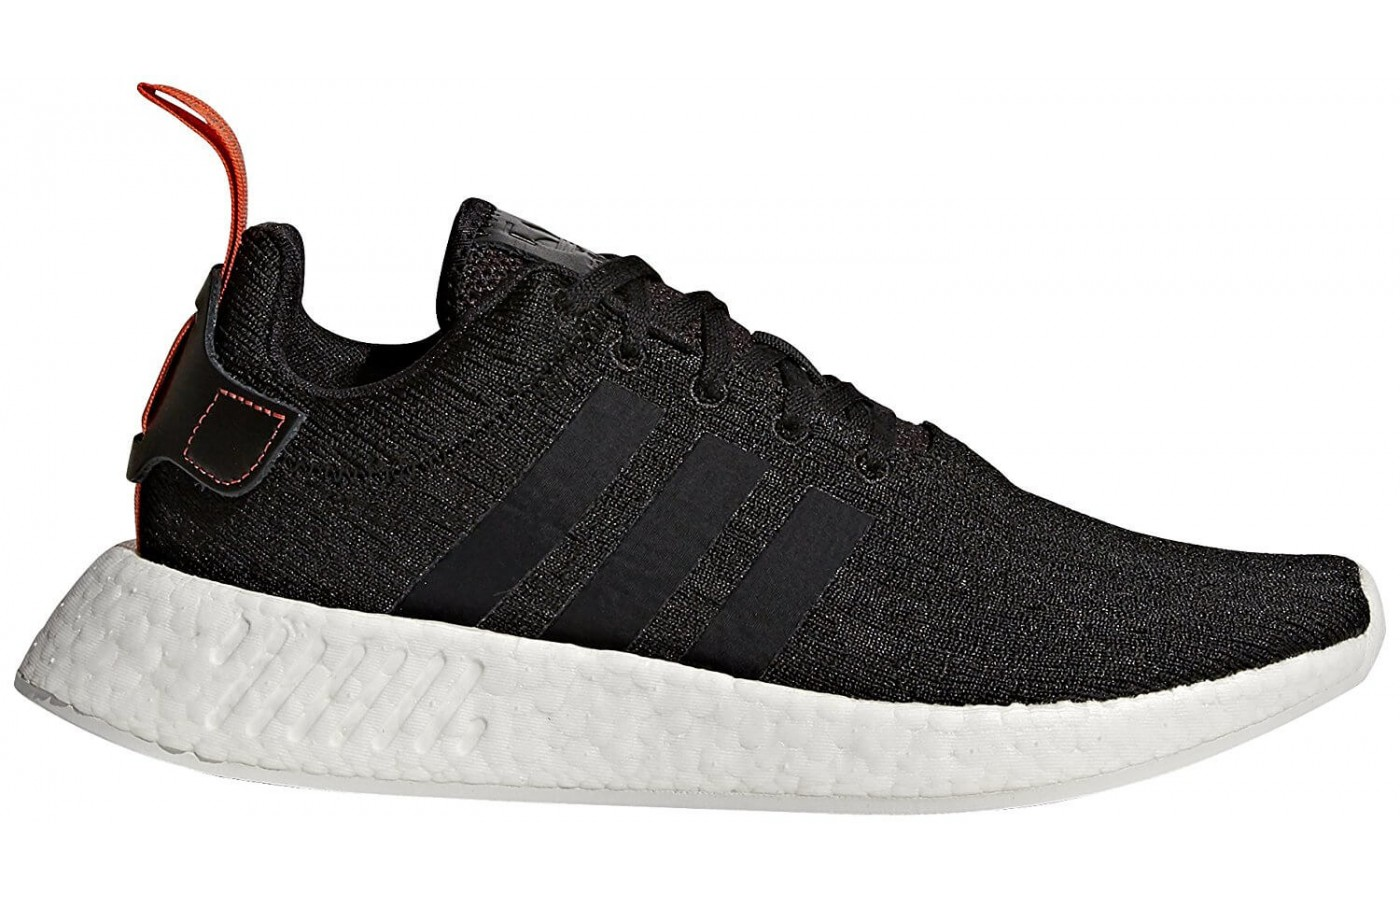 09213391f4385 ... Primeknit upper  The Adidas NMD R2 features a Boost midsole ...